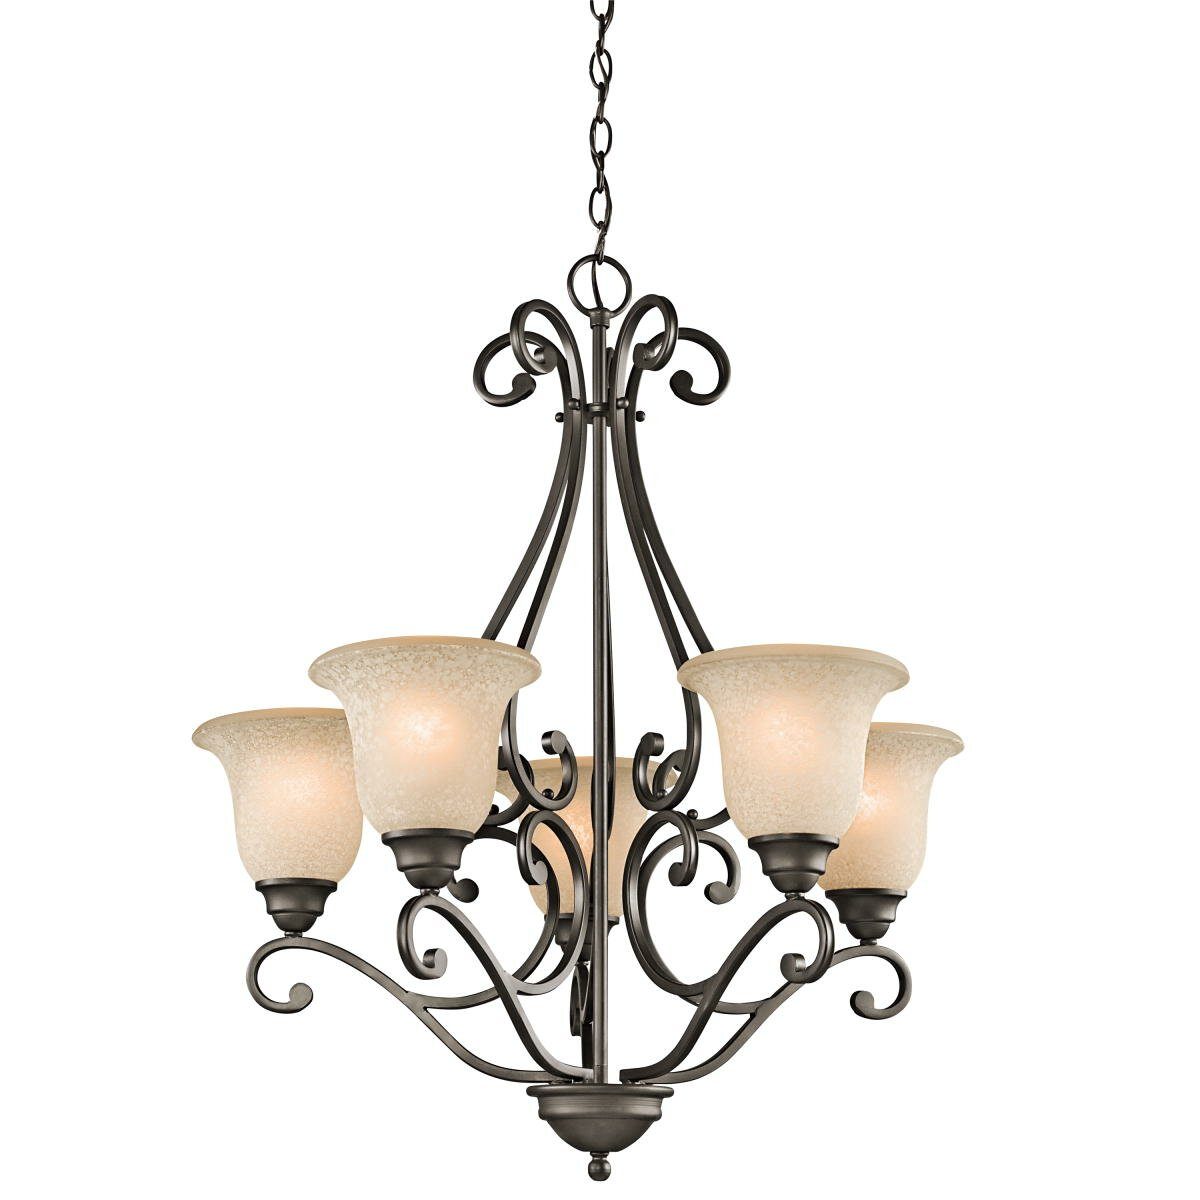 Kichler camerena 5 light chandelier reviews wayfair - Lights and chandeliers ...